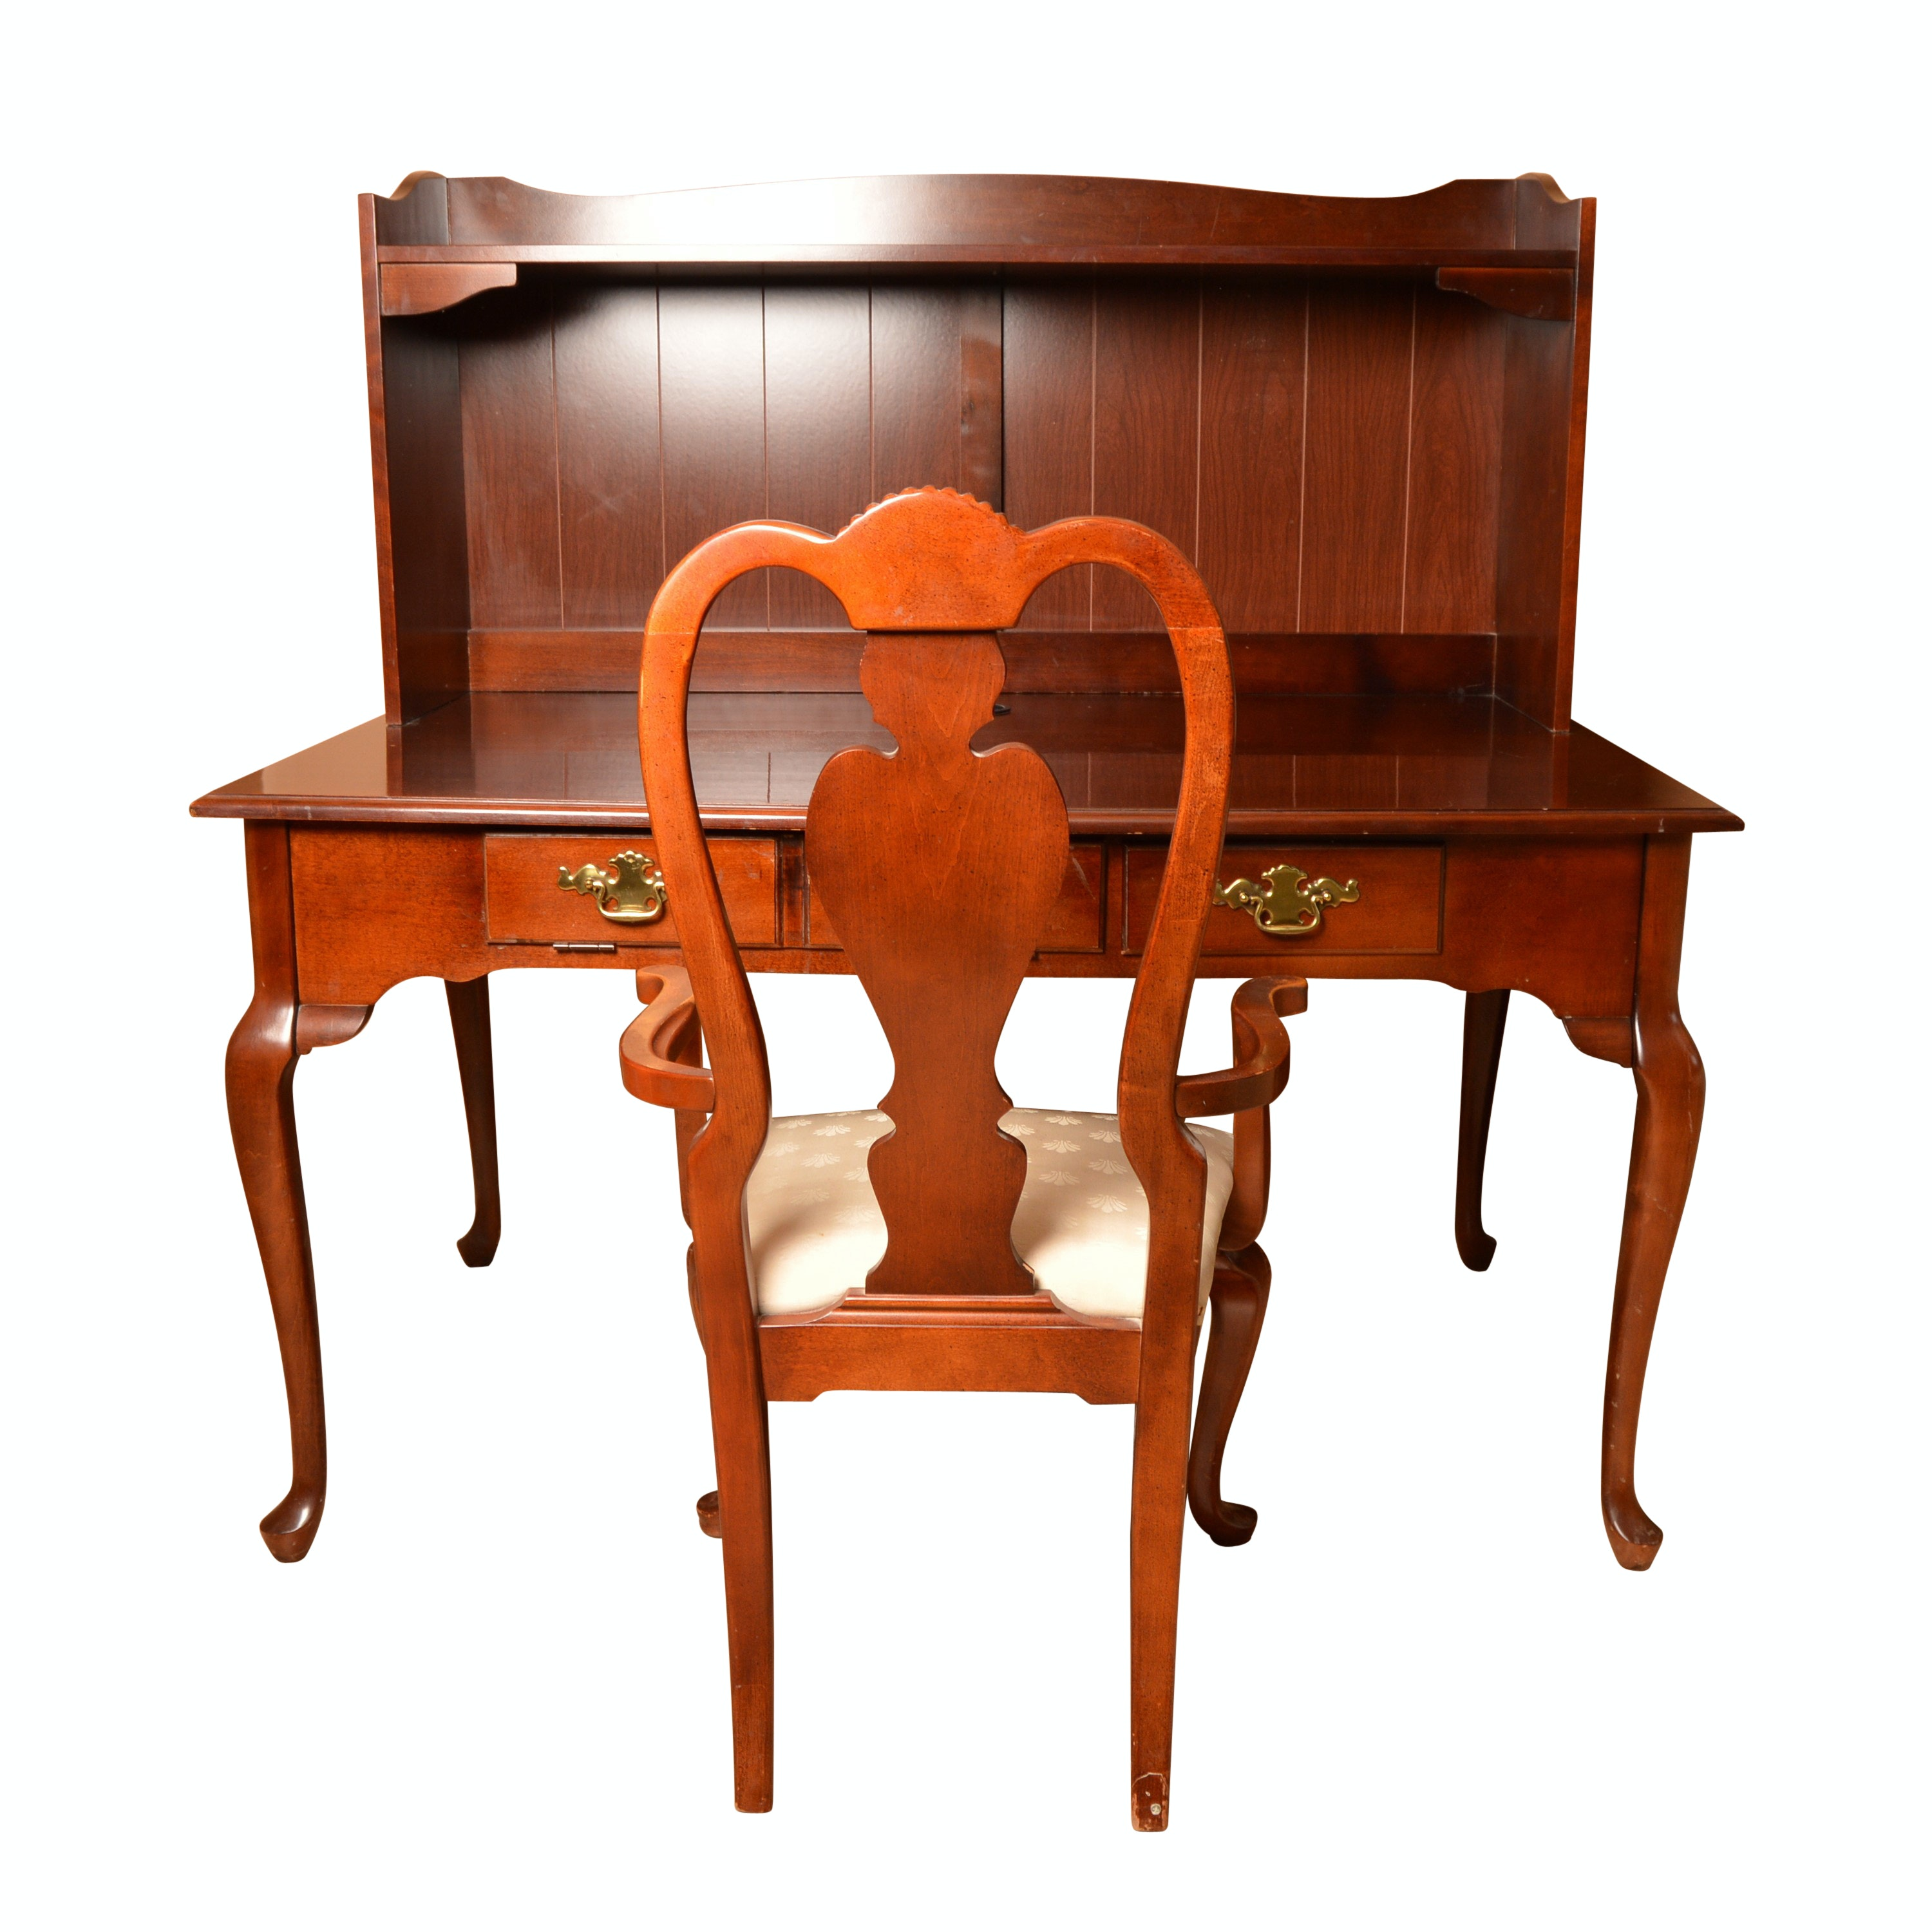 Queen Anne Style Writing Desk Armchair by Bassett ...  sc 1 st  EBTH.com & Queen Anne Style Writing Desk Armchair by Bassett : EBTH